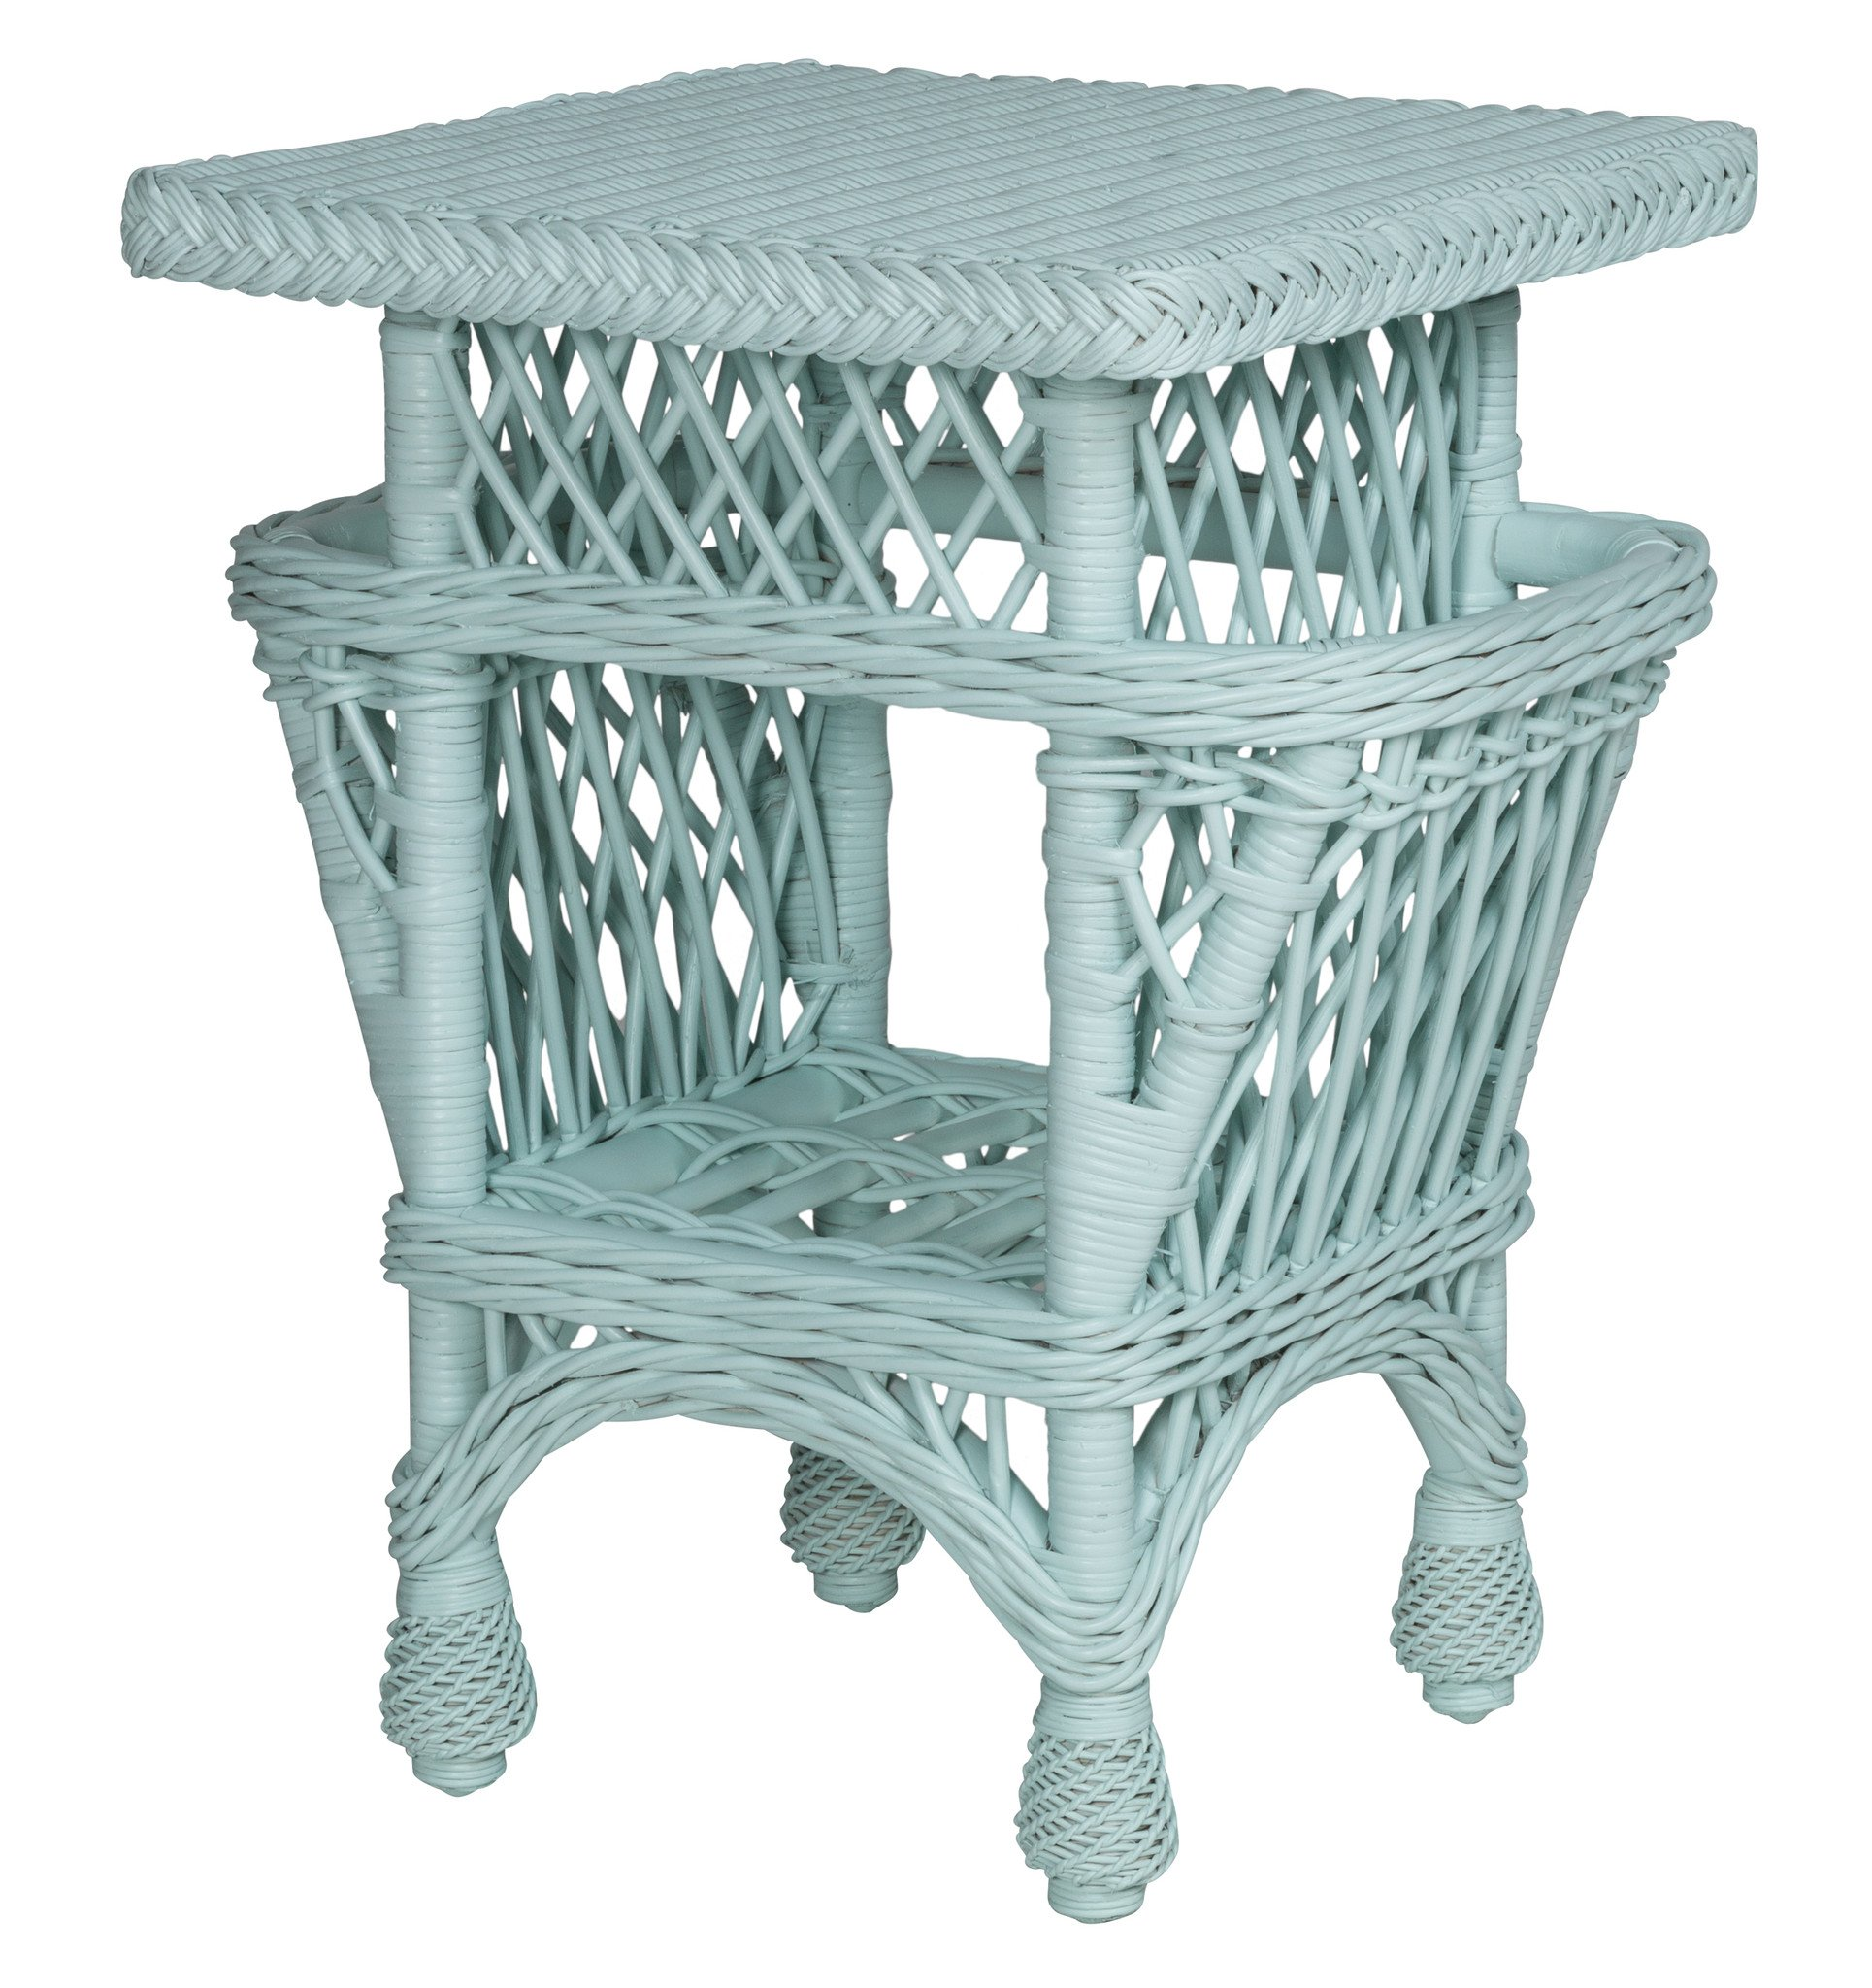 harbor front accent table with pockets designer wicker tribor light blue mango chest drawers pink chandelier lamp distressed holiday placemats and napkins west elm office chair